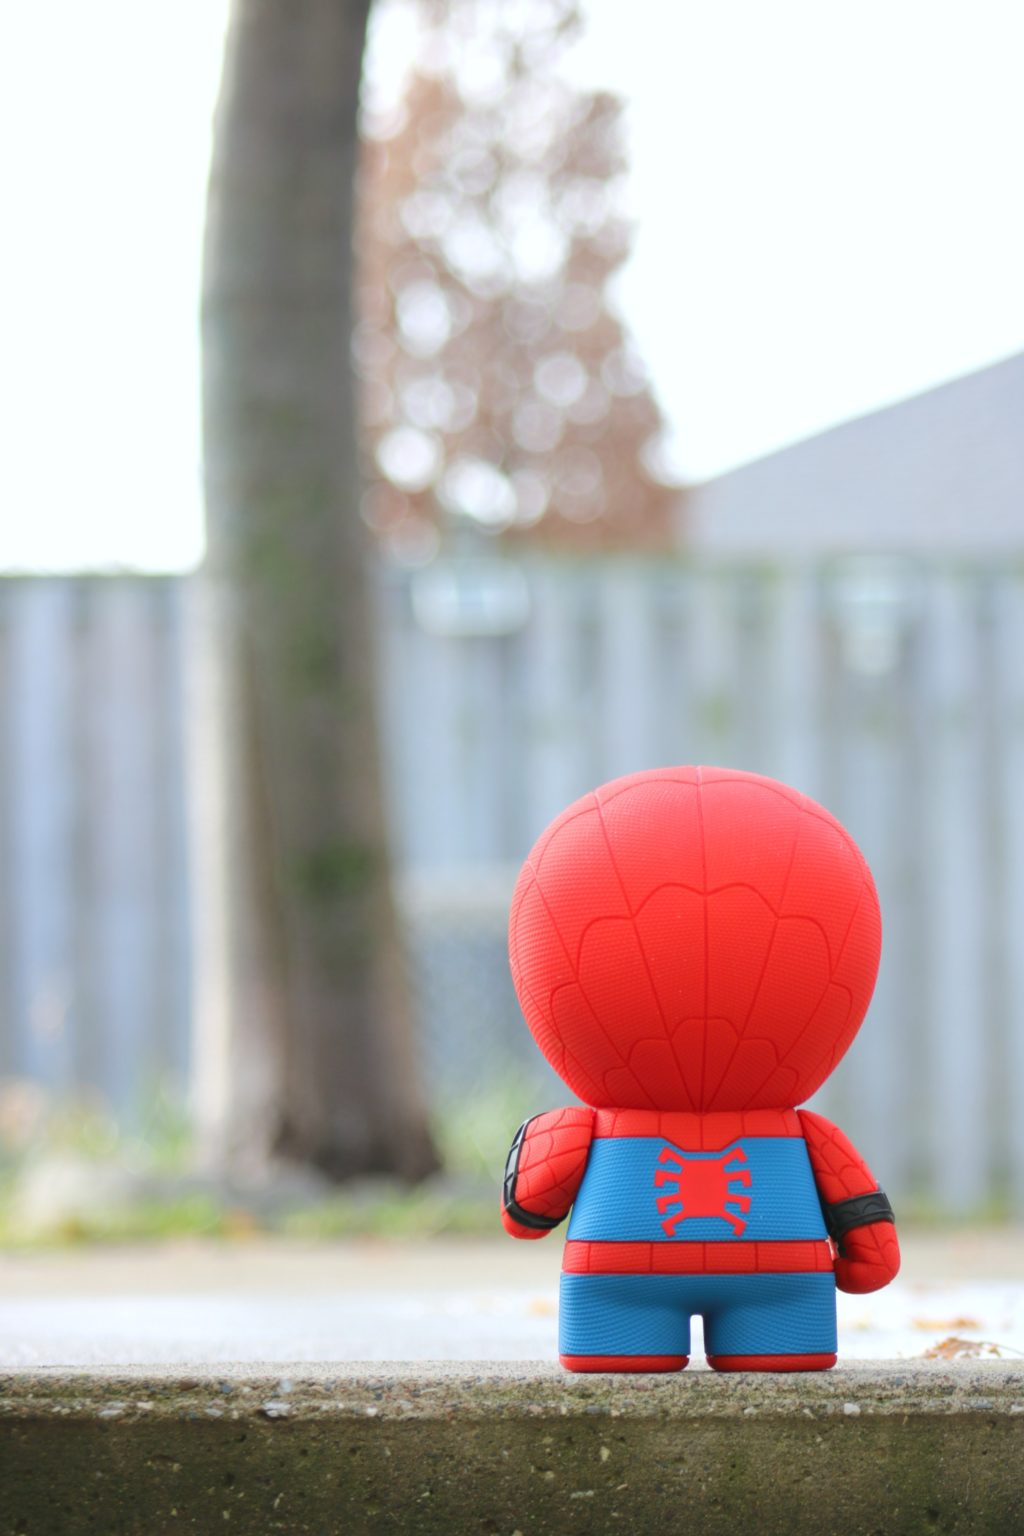 One of the Must-Have Gifts for Spider-Man and Marvel Fans! LIttle Spiderman stands outside in what seems like a big world, a tree is in front of him.